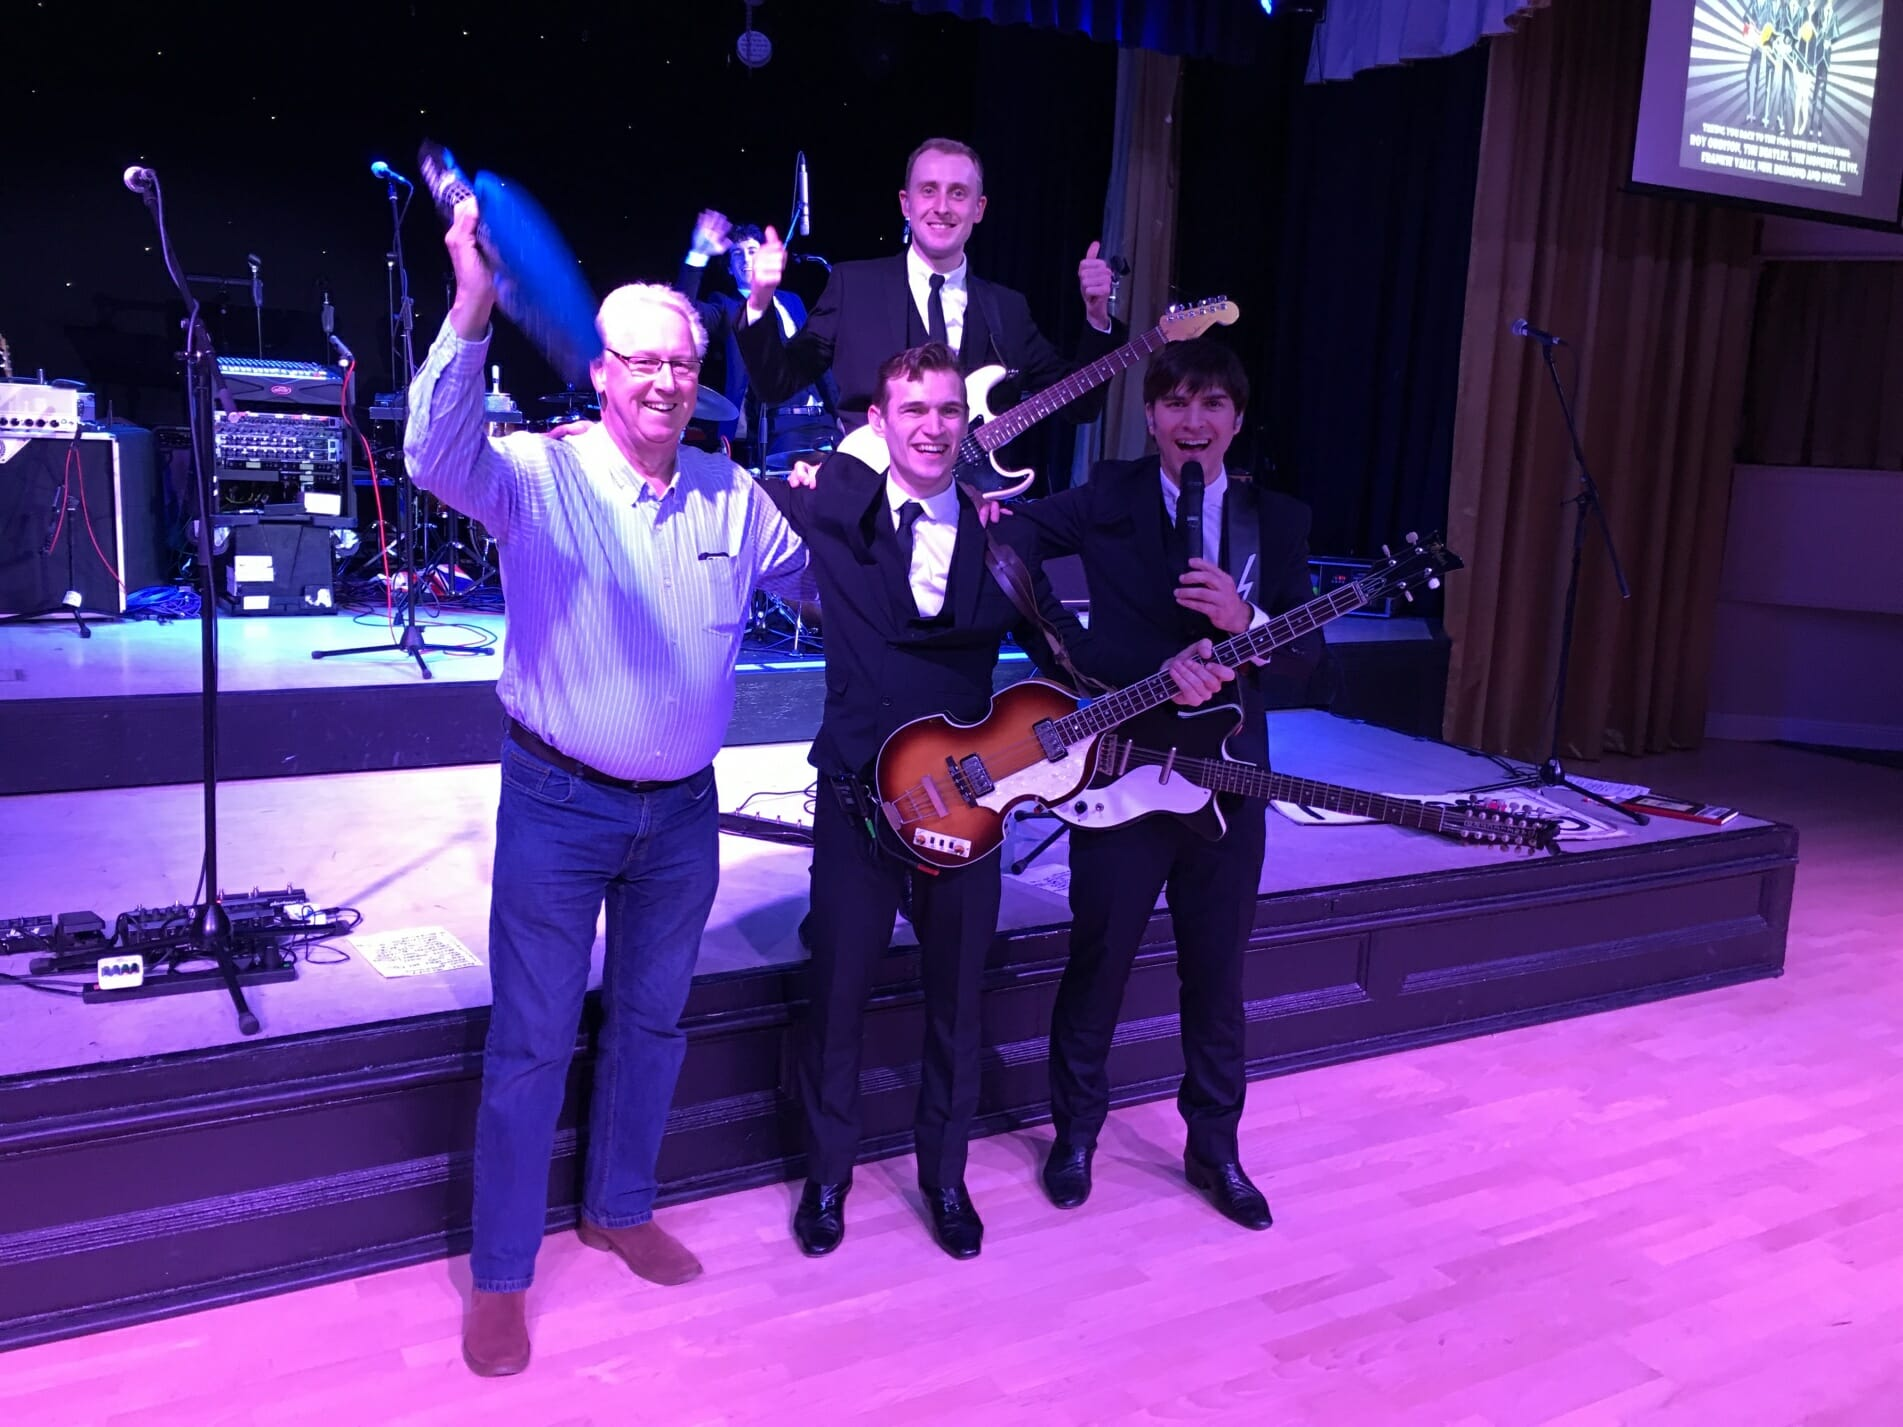 60s band, 60s band south west, 60s tribute band london, sixties tribute band, sixties band, sixties tribute somerset, 60s tribute band Somerset, 60's tribute band in somerset, zoots 60s band, zoots sixties band, 60s tribute show, sixties tribute show, 60s tribute south,